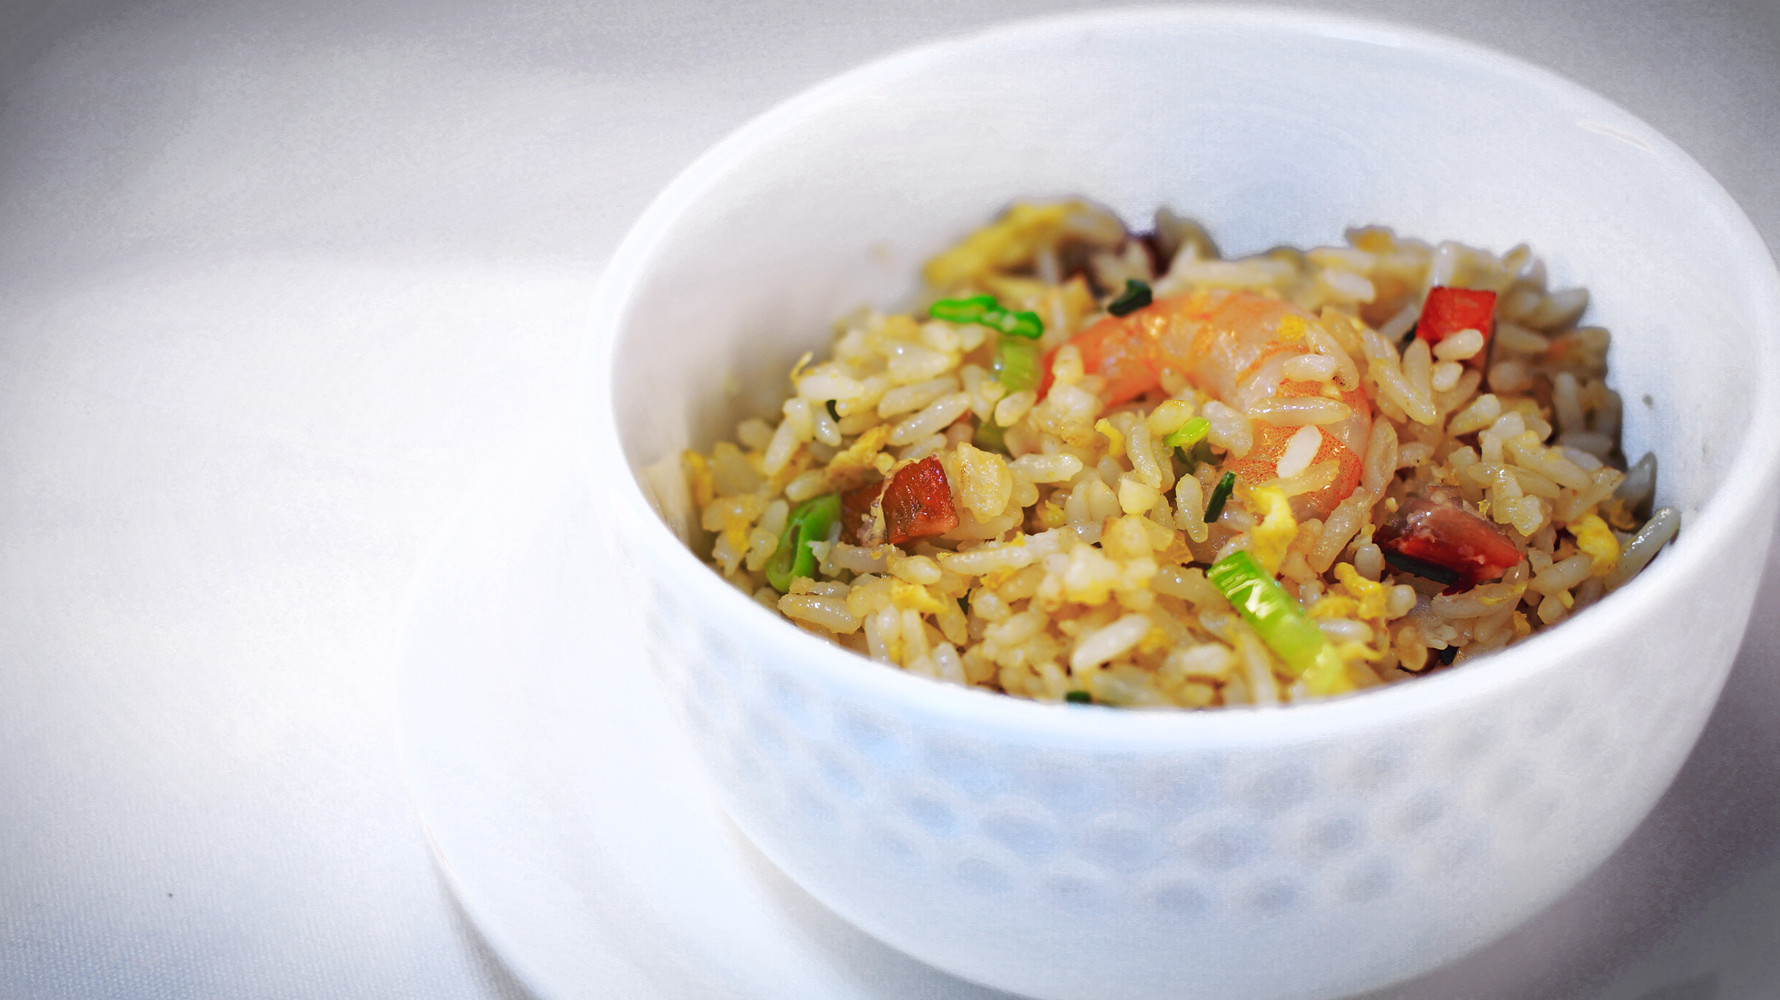 Young Chow fried rice from Chinese restaurant in Gosforth Newcastle upon Tyne near NE3 5HN